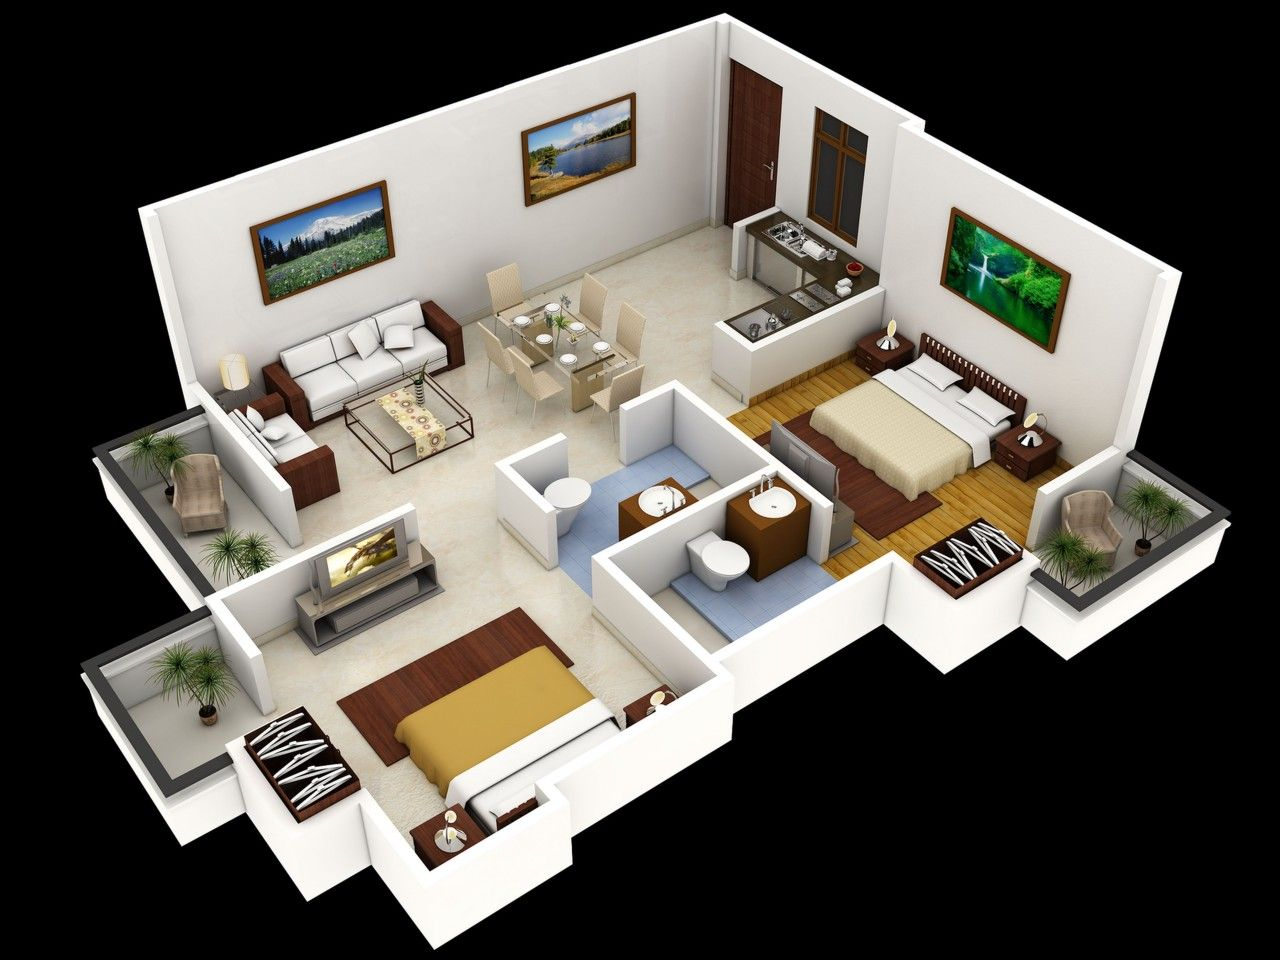 Comely Designing A House Innovation Hot Small House Design Ideas